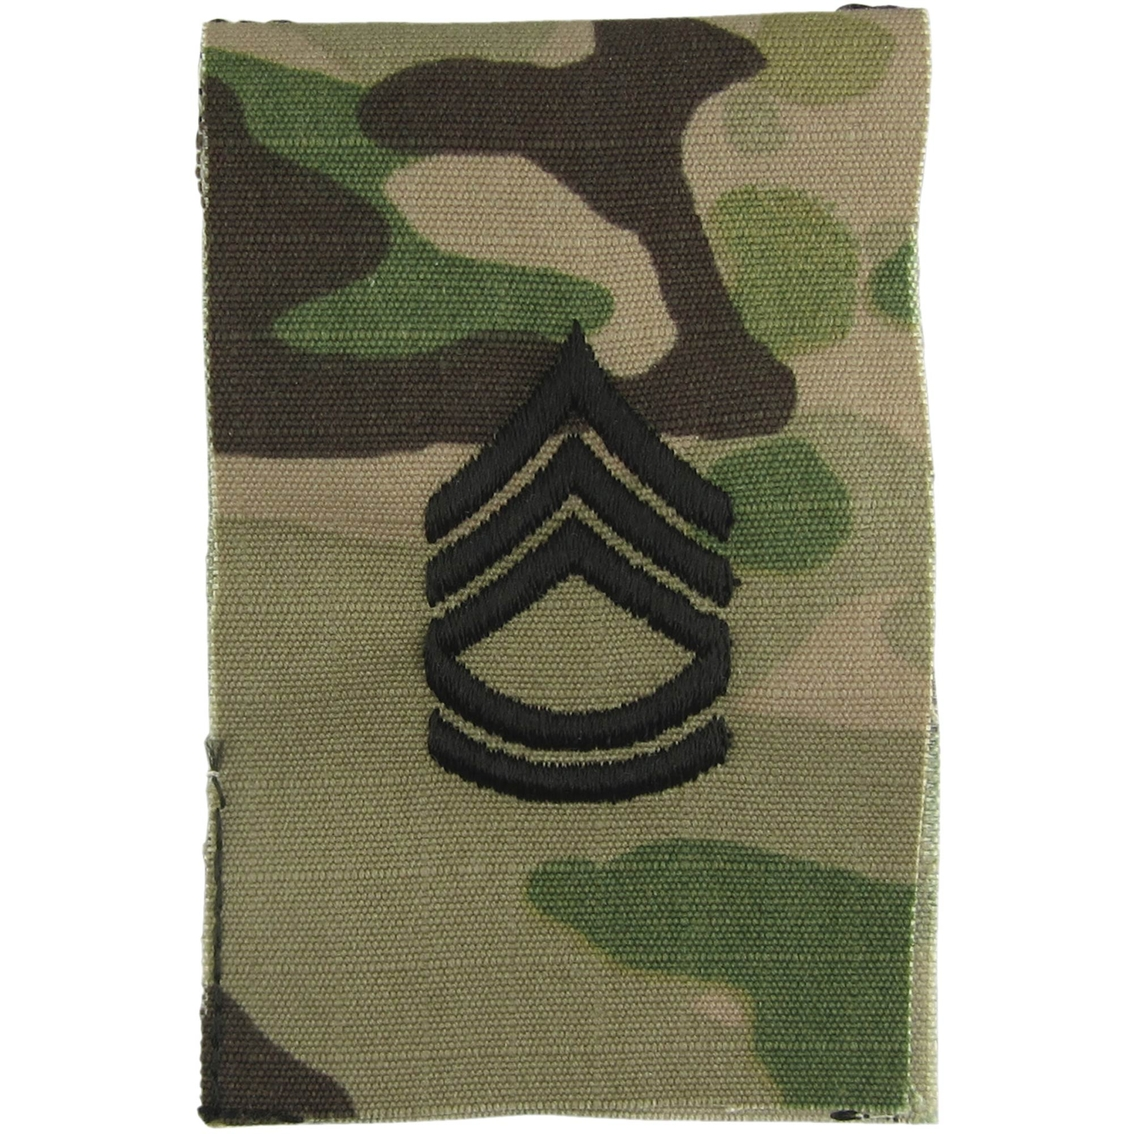 Army Rank Sergeant First Class (sfc) Sew.